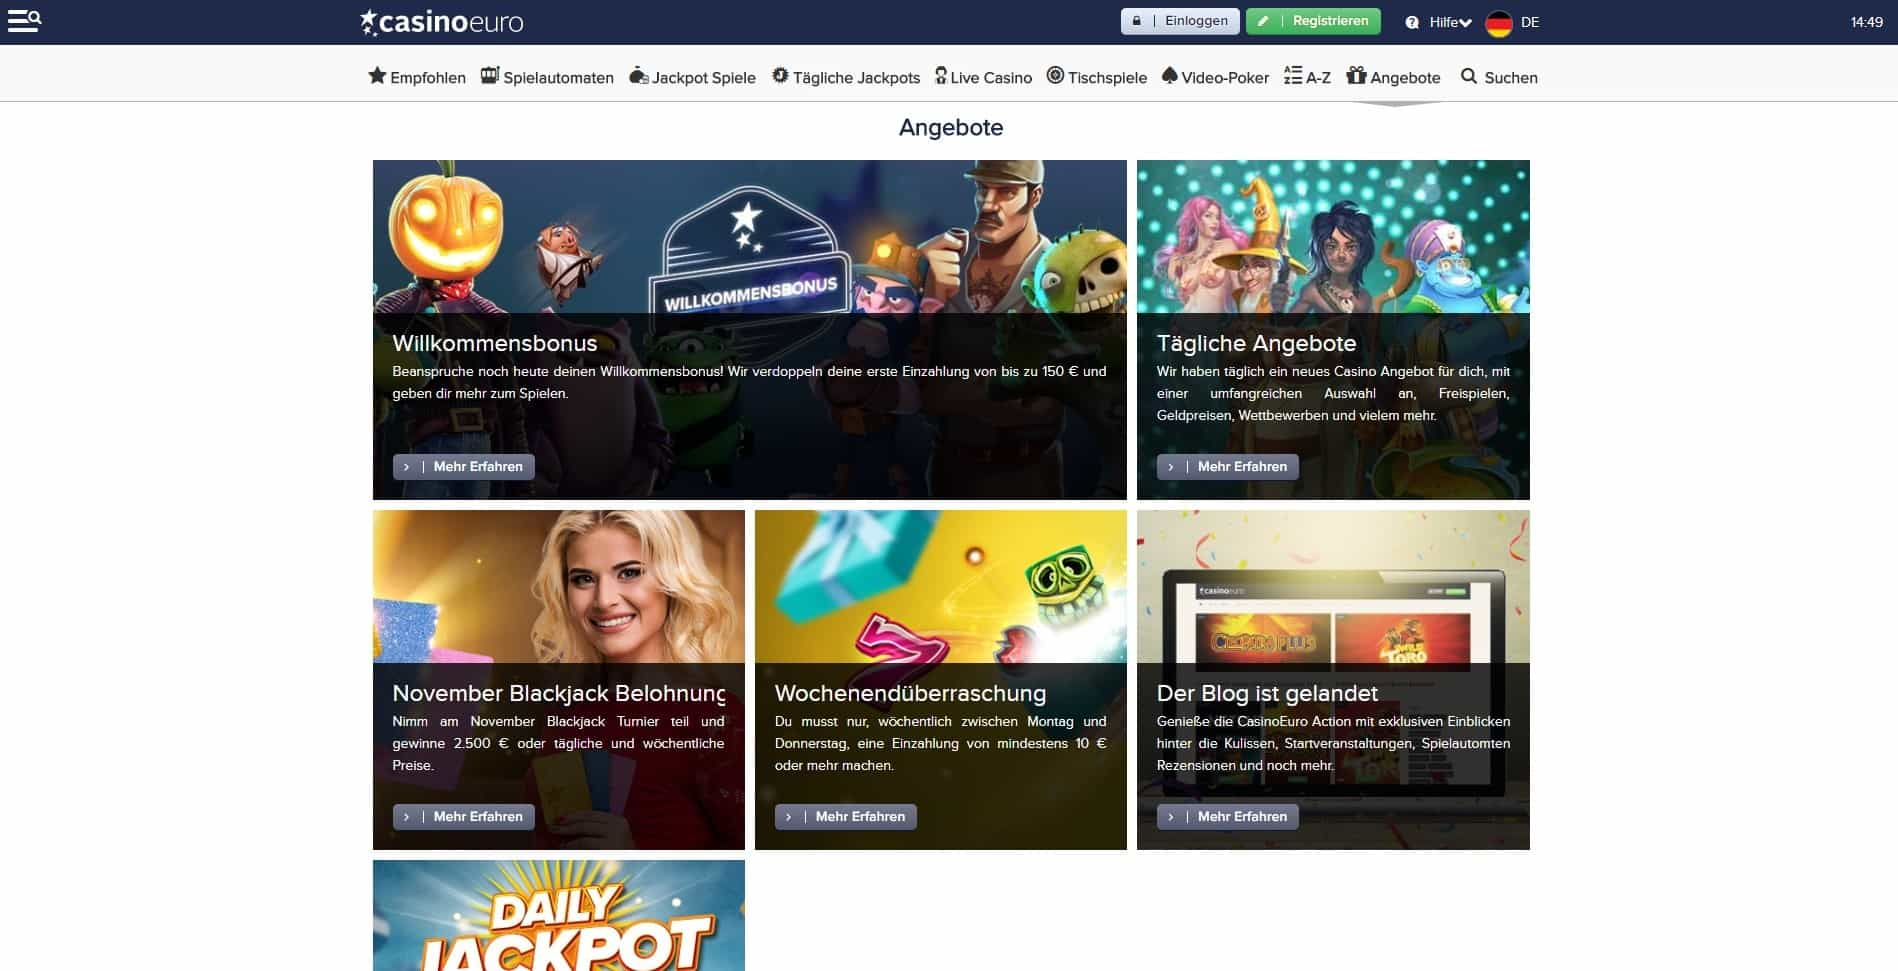 casinoeuro netent